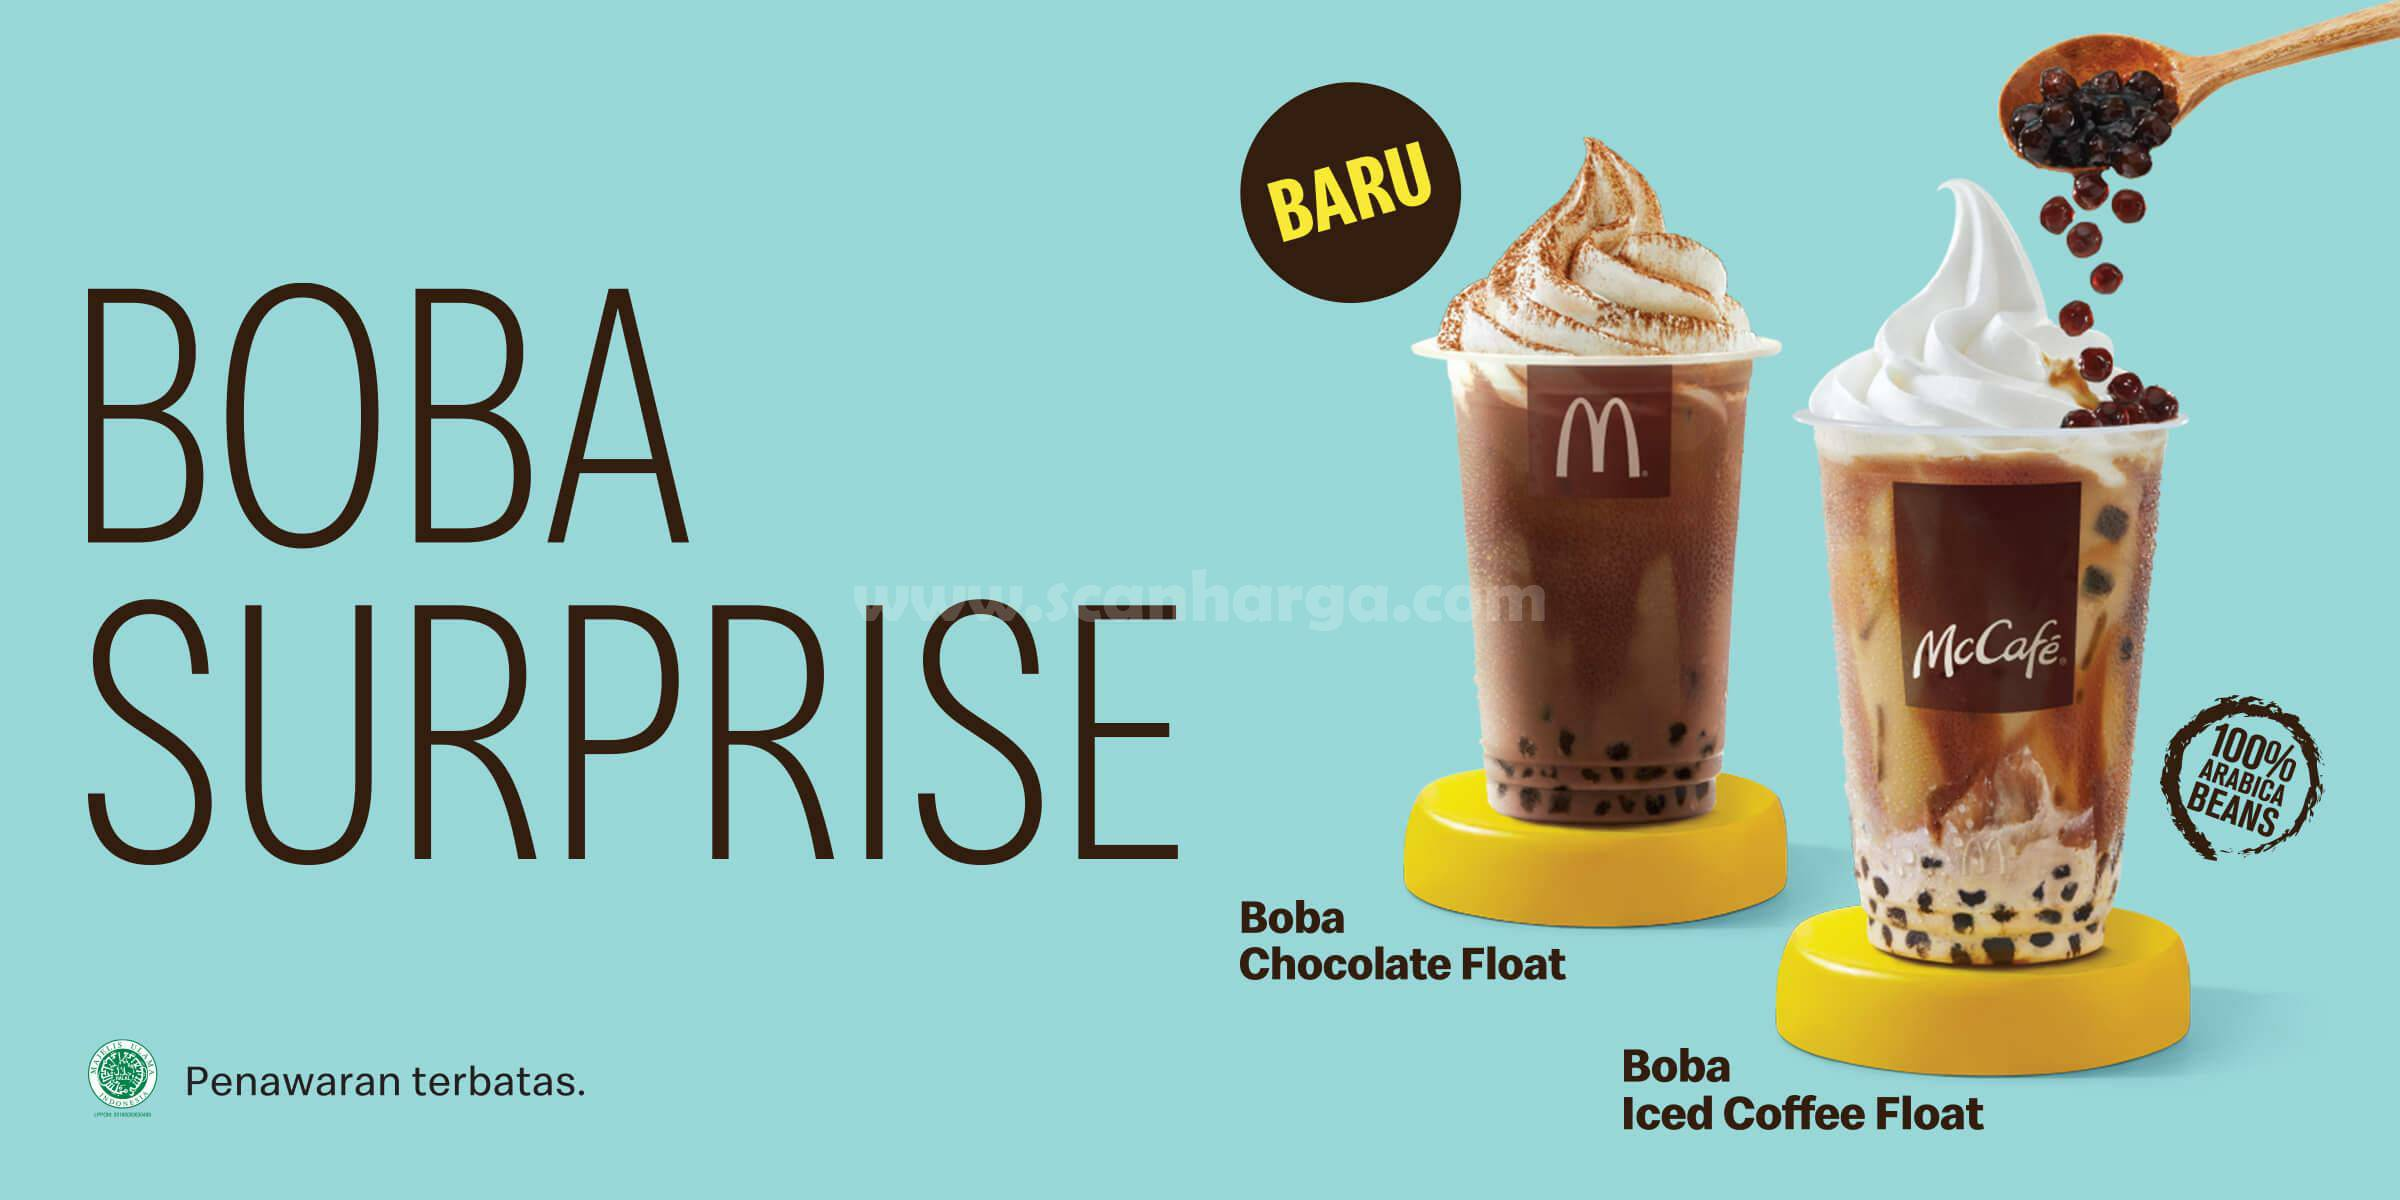 McDonalds BOBA Iced Coffee & Chocolate Float! Menu Baru dari McD